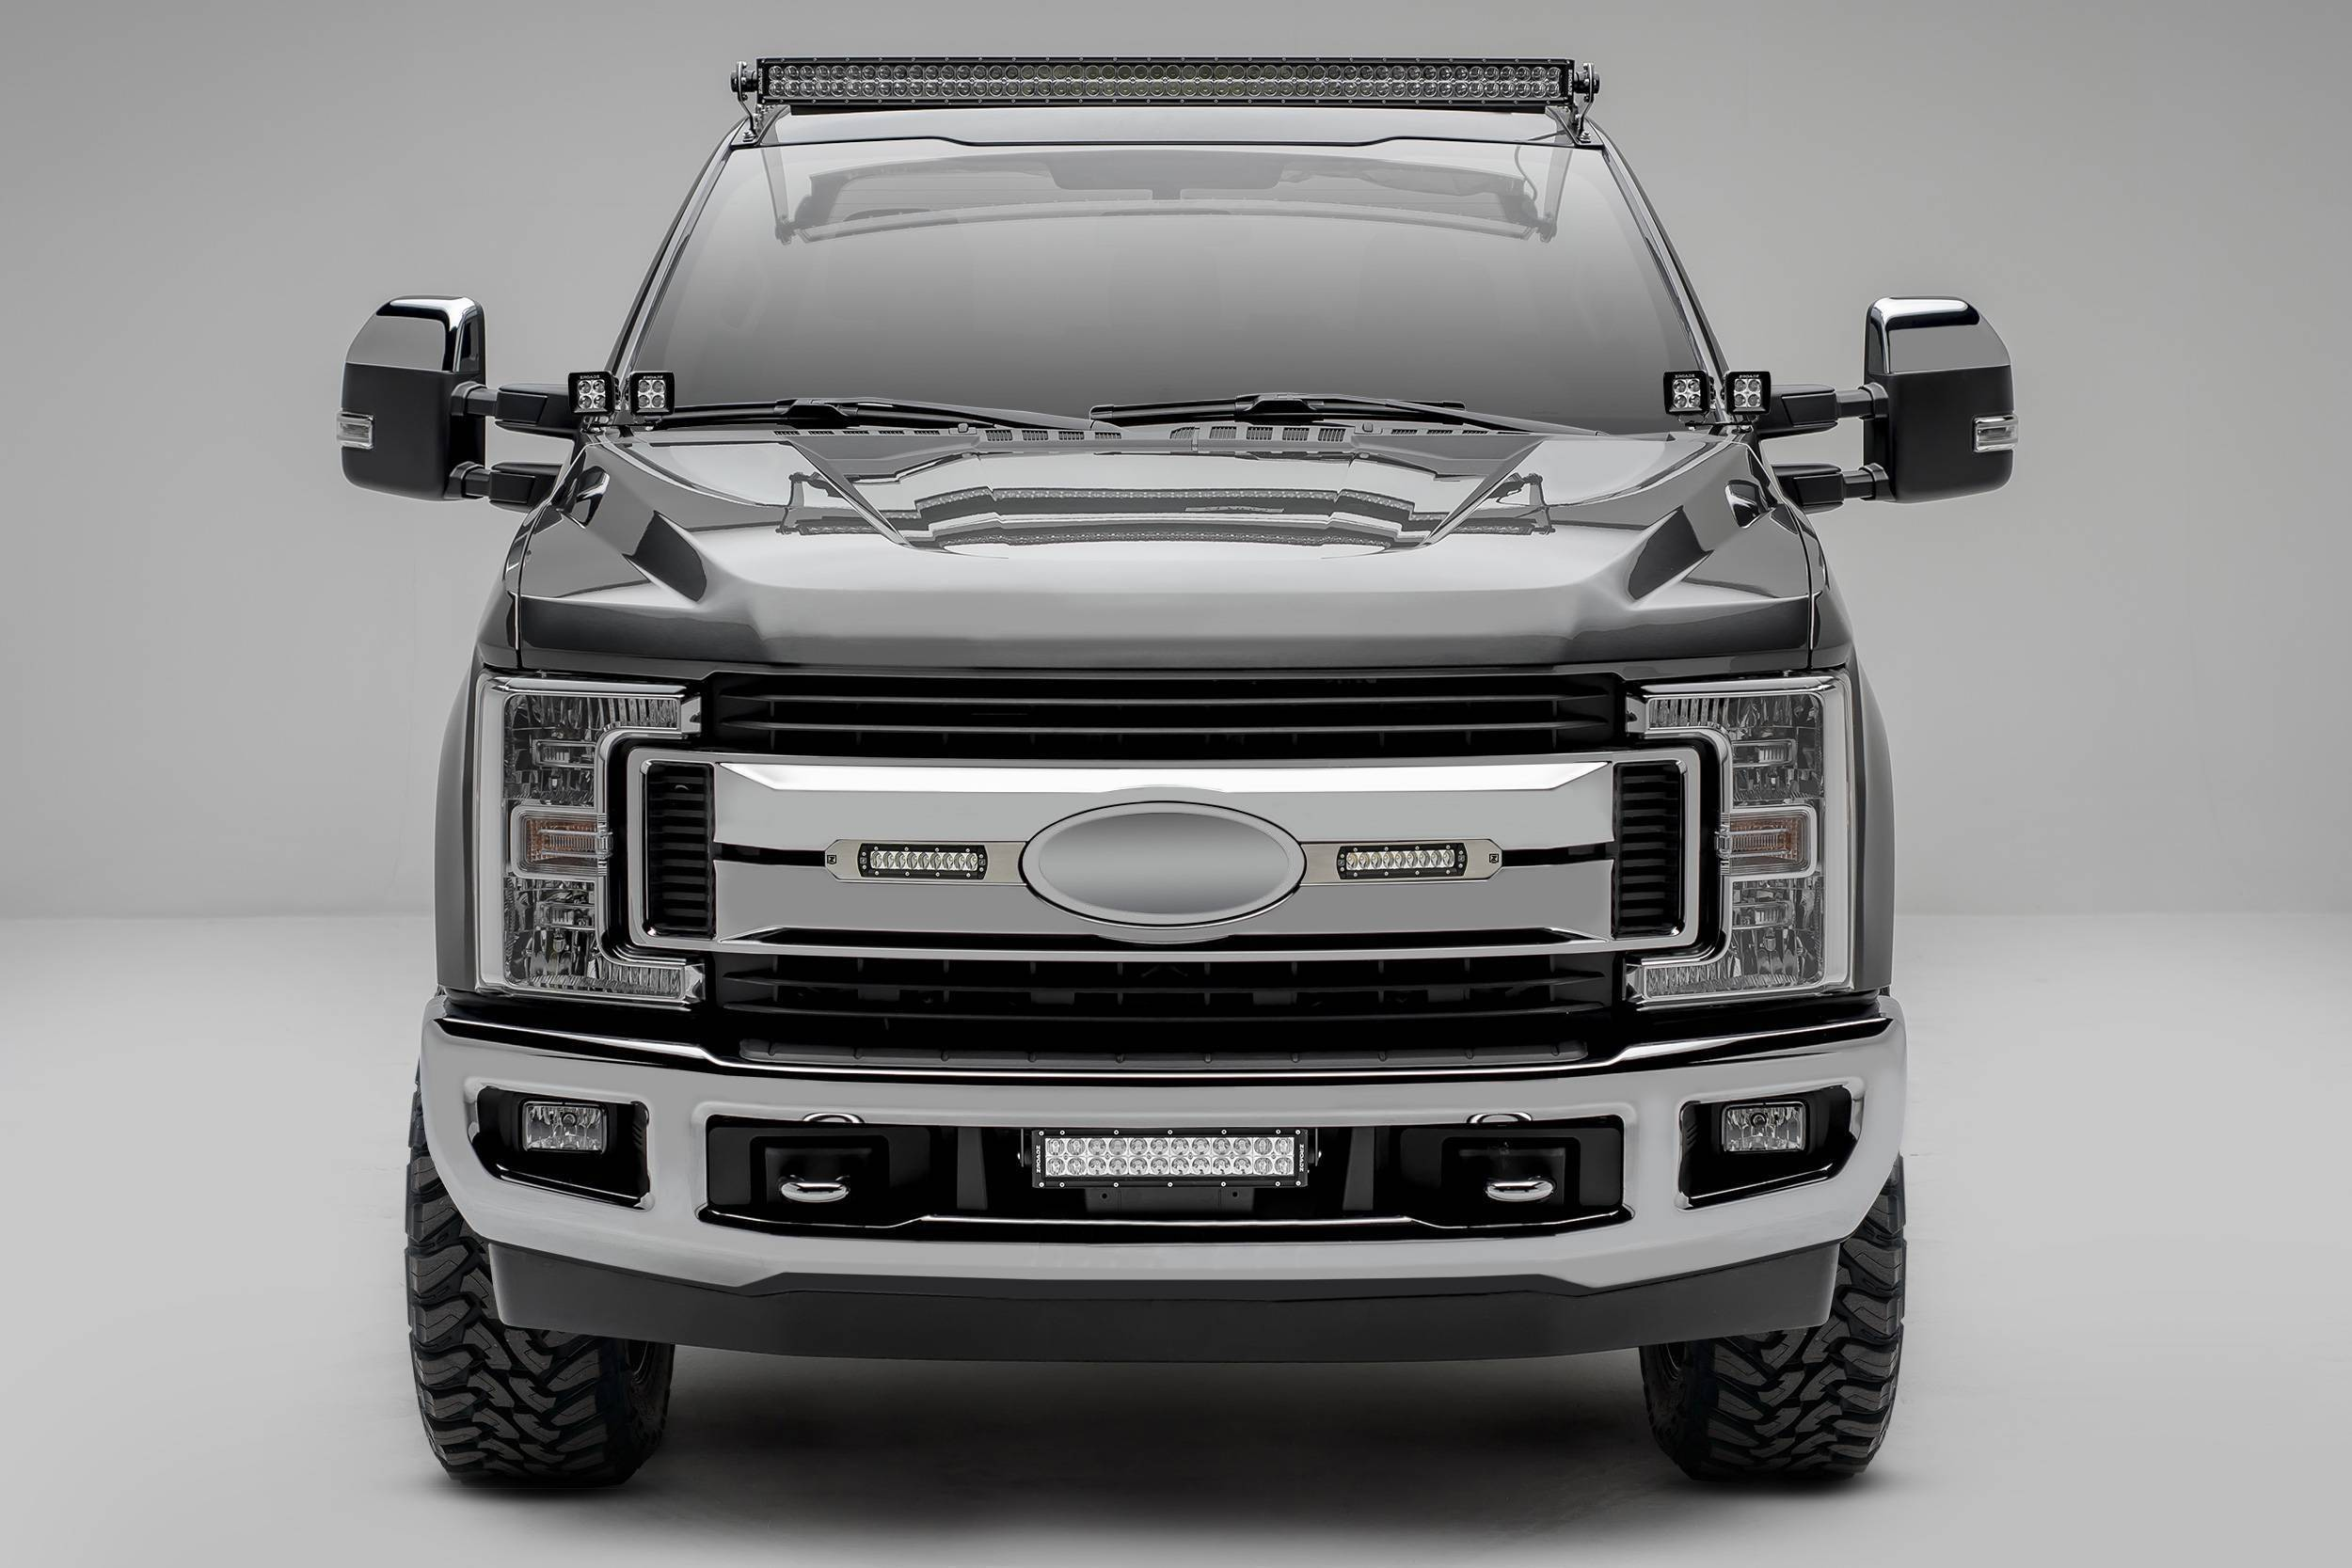 ZROADZ OFF ROAD PRODUCTS Z415573-KIT 2017-2019 Ford Super Duty XLT, XL STX OEM Grille LED Kit with (